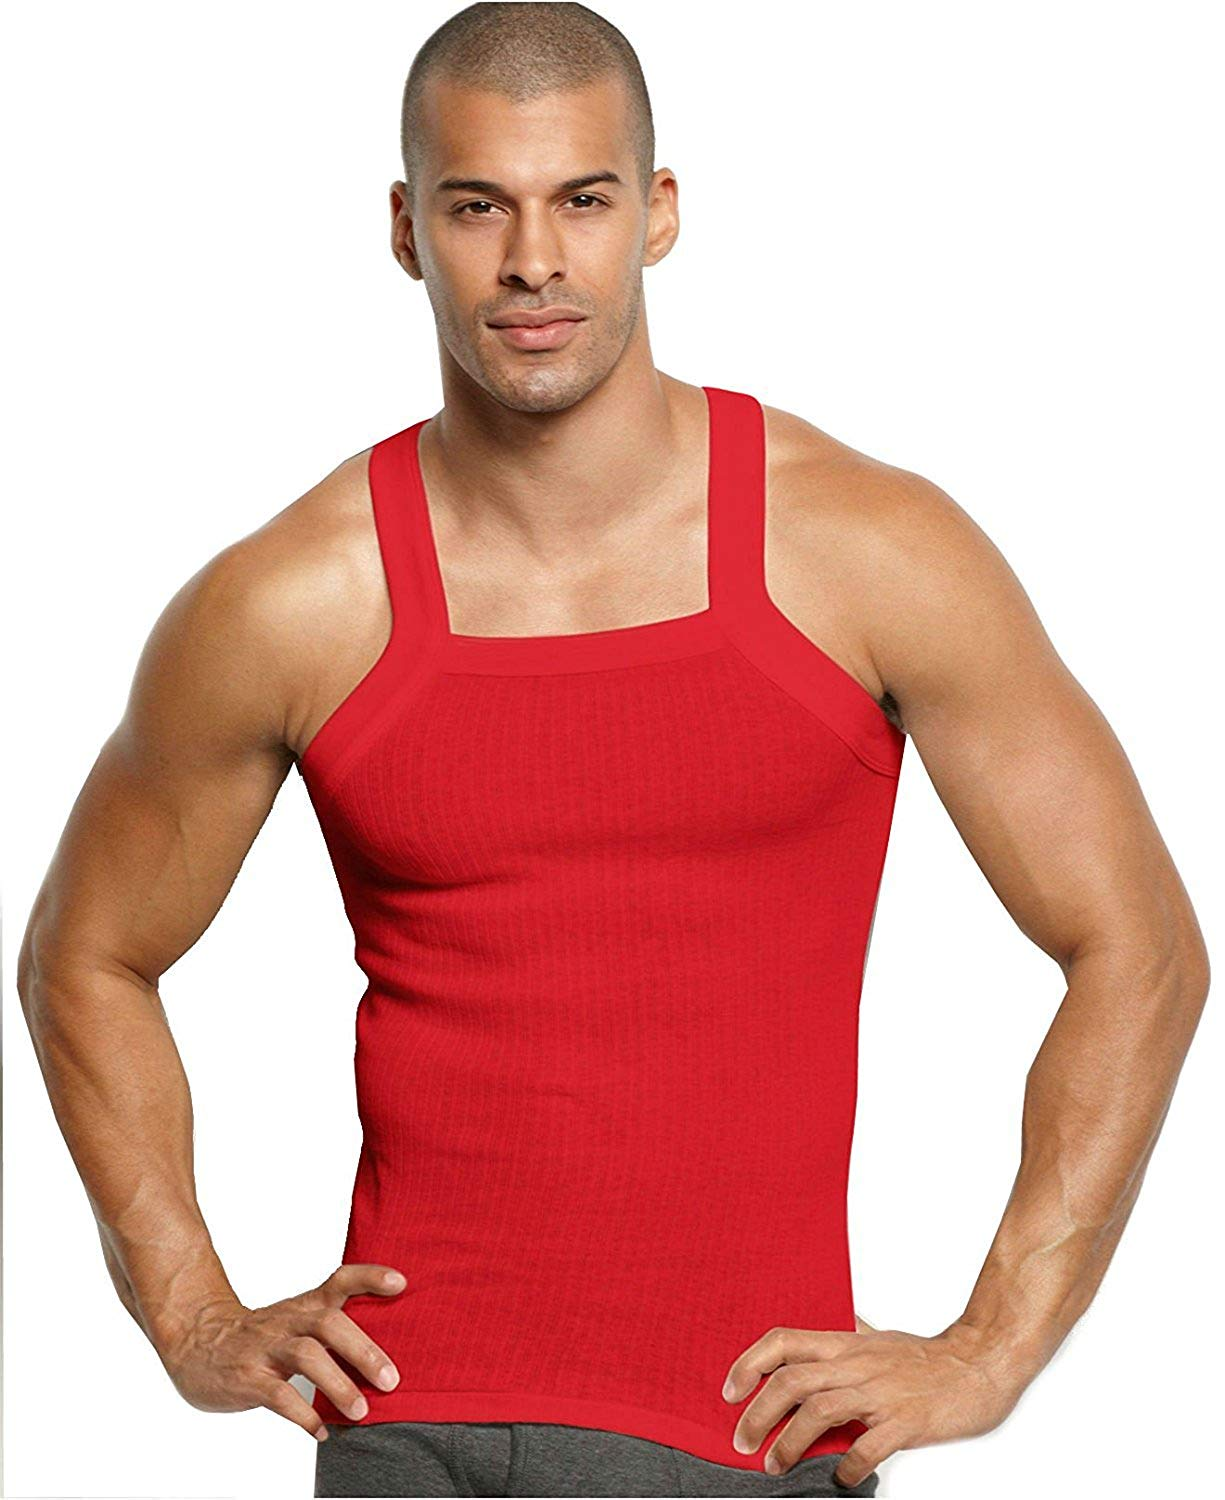 50404600b Get Quotations · John Son Super Heavy Weight Square Cut Tank Top - 4 Pack